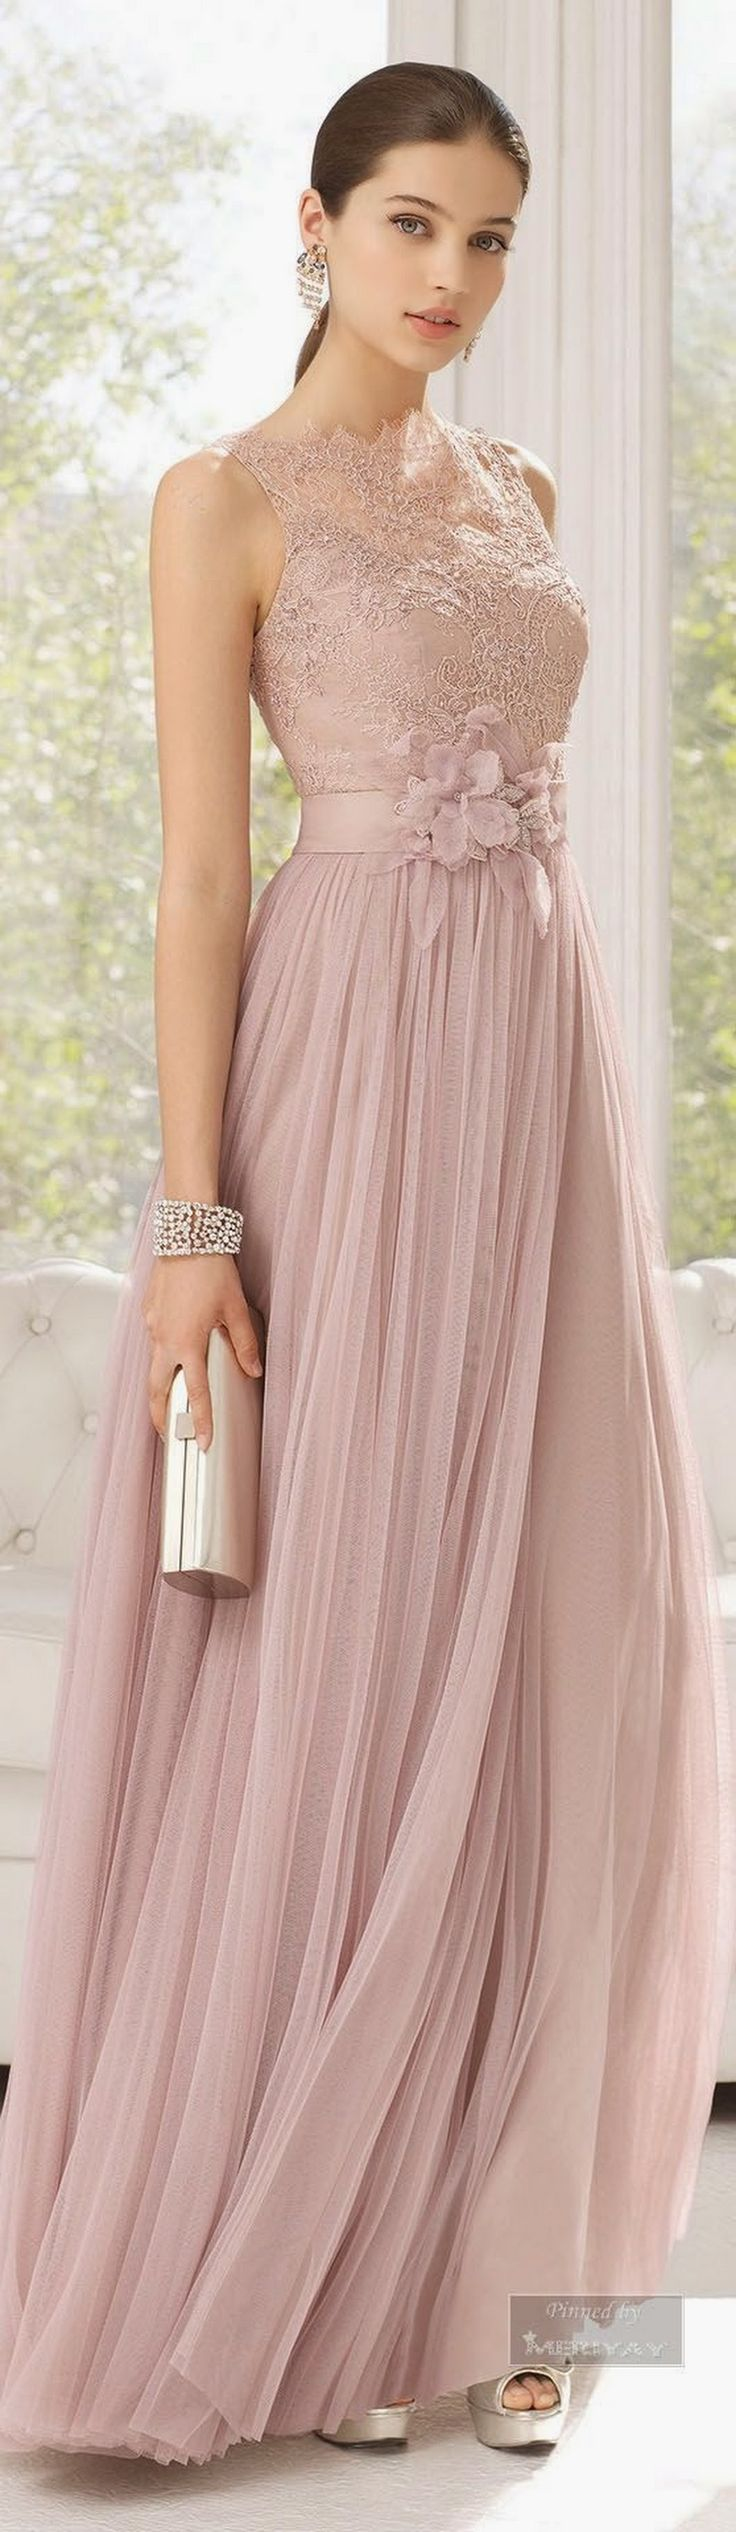 14 best Vestidos images on Pinterest | Cute dresses, Classy dress ...